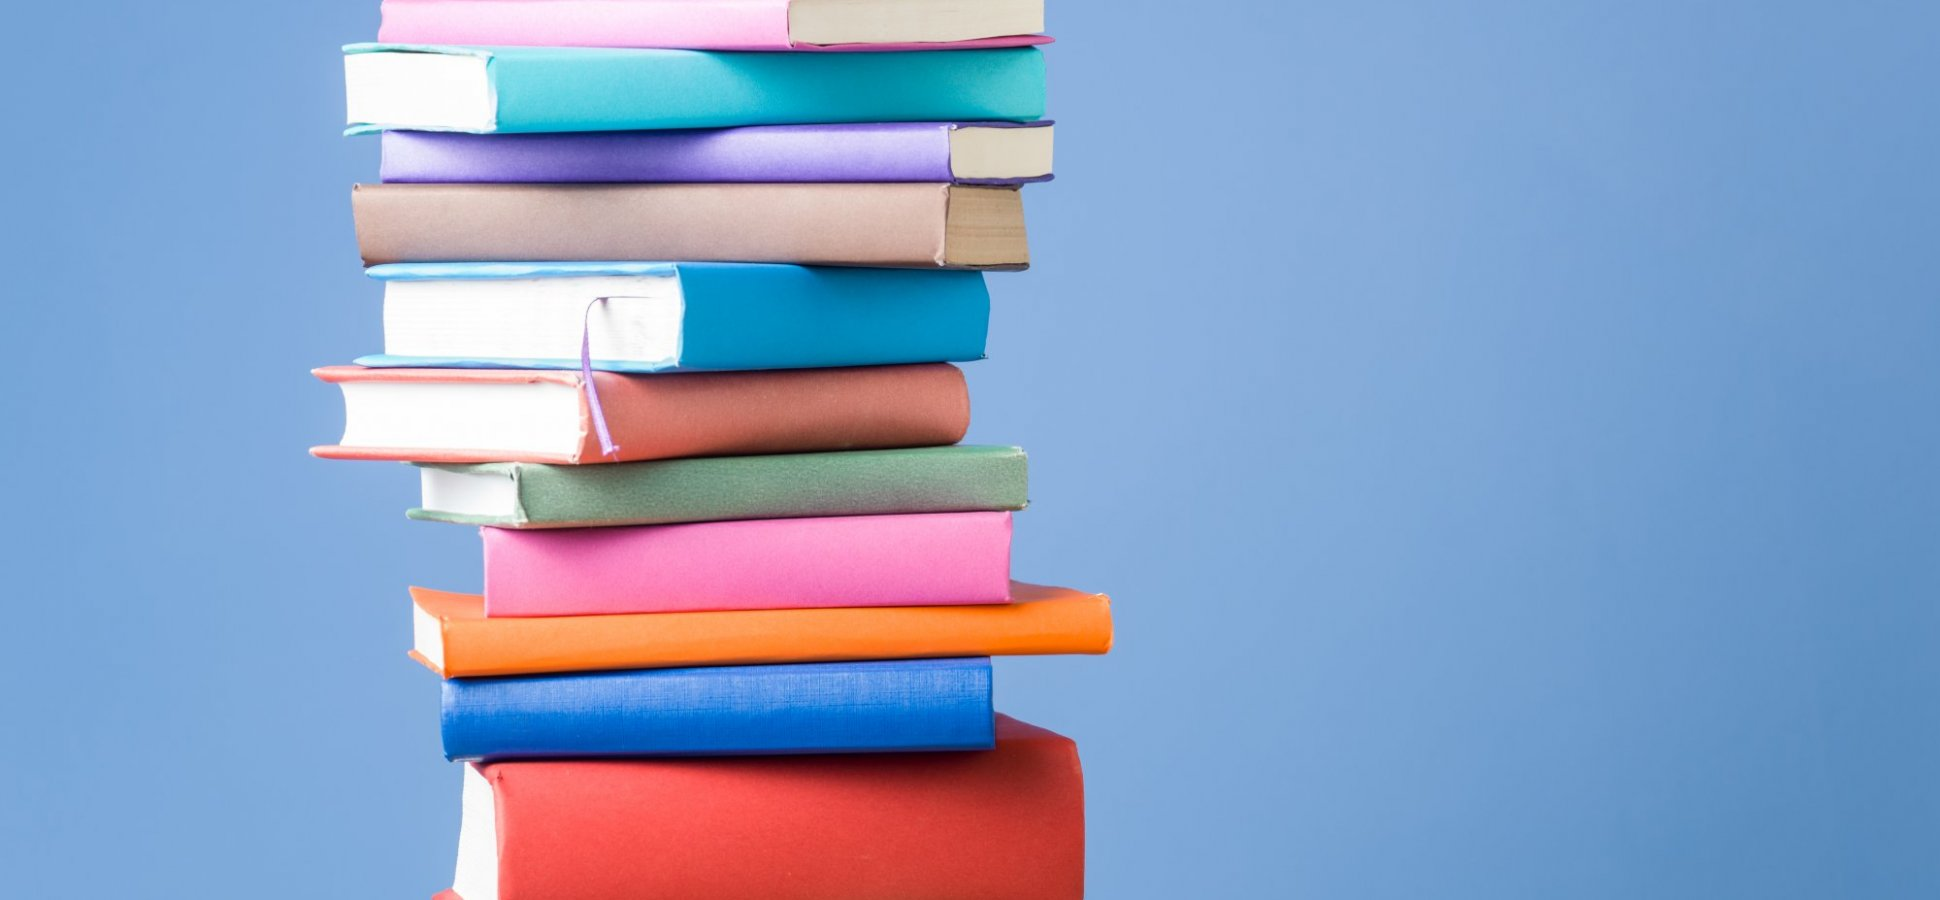 17 Great Books for Anyone Who Wants to Get Ahead in Business